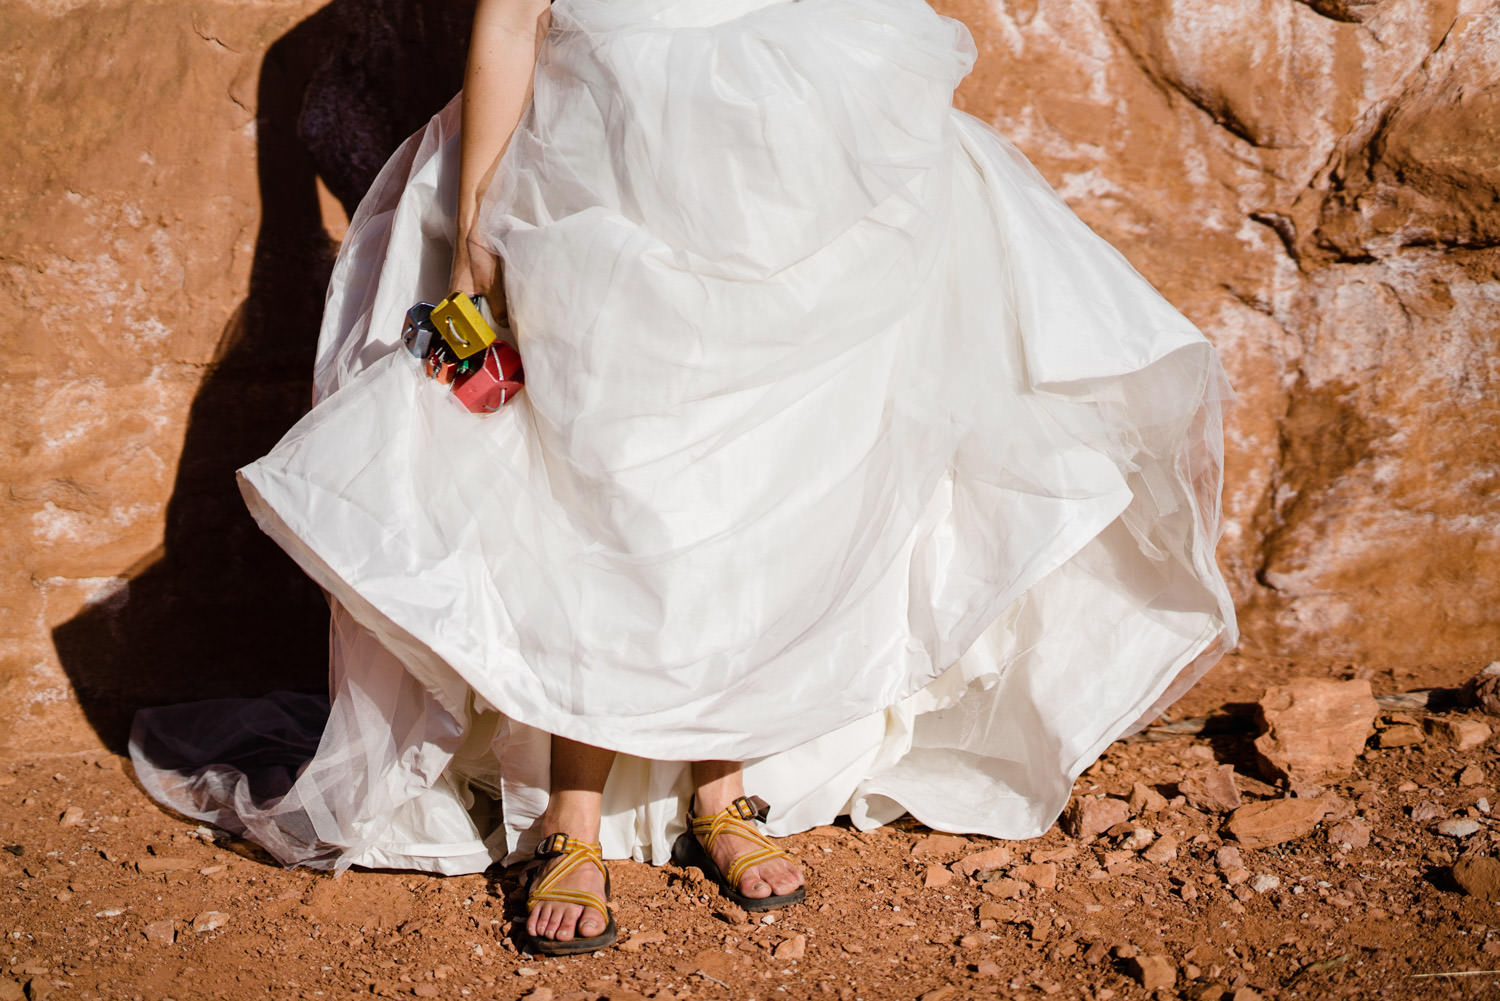 Kolob Canyons Wedding in Zion National Park bridal details photo